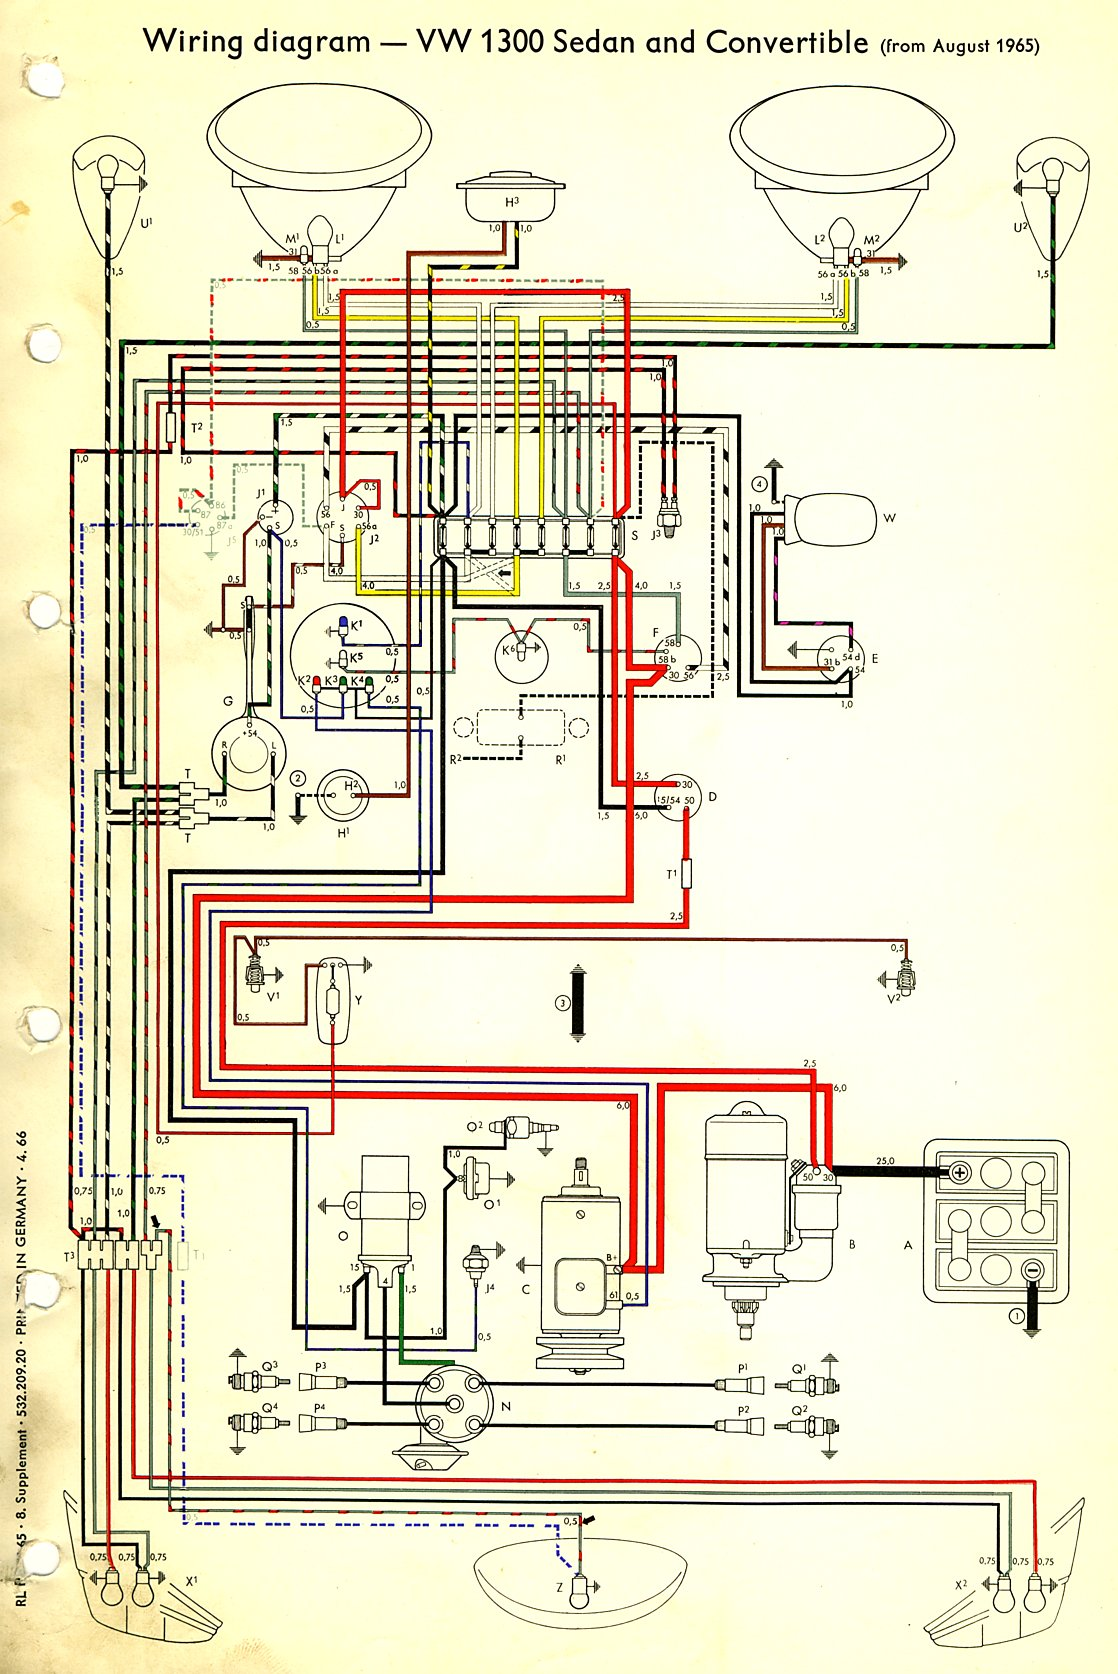 bug_66 1966 beetle wiring diagram thegoldenbug com vw wiring diagrams at webbmarketing.co